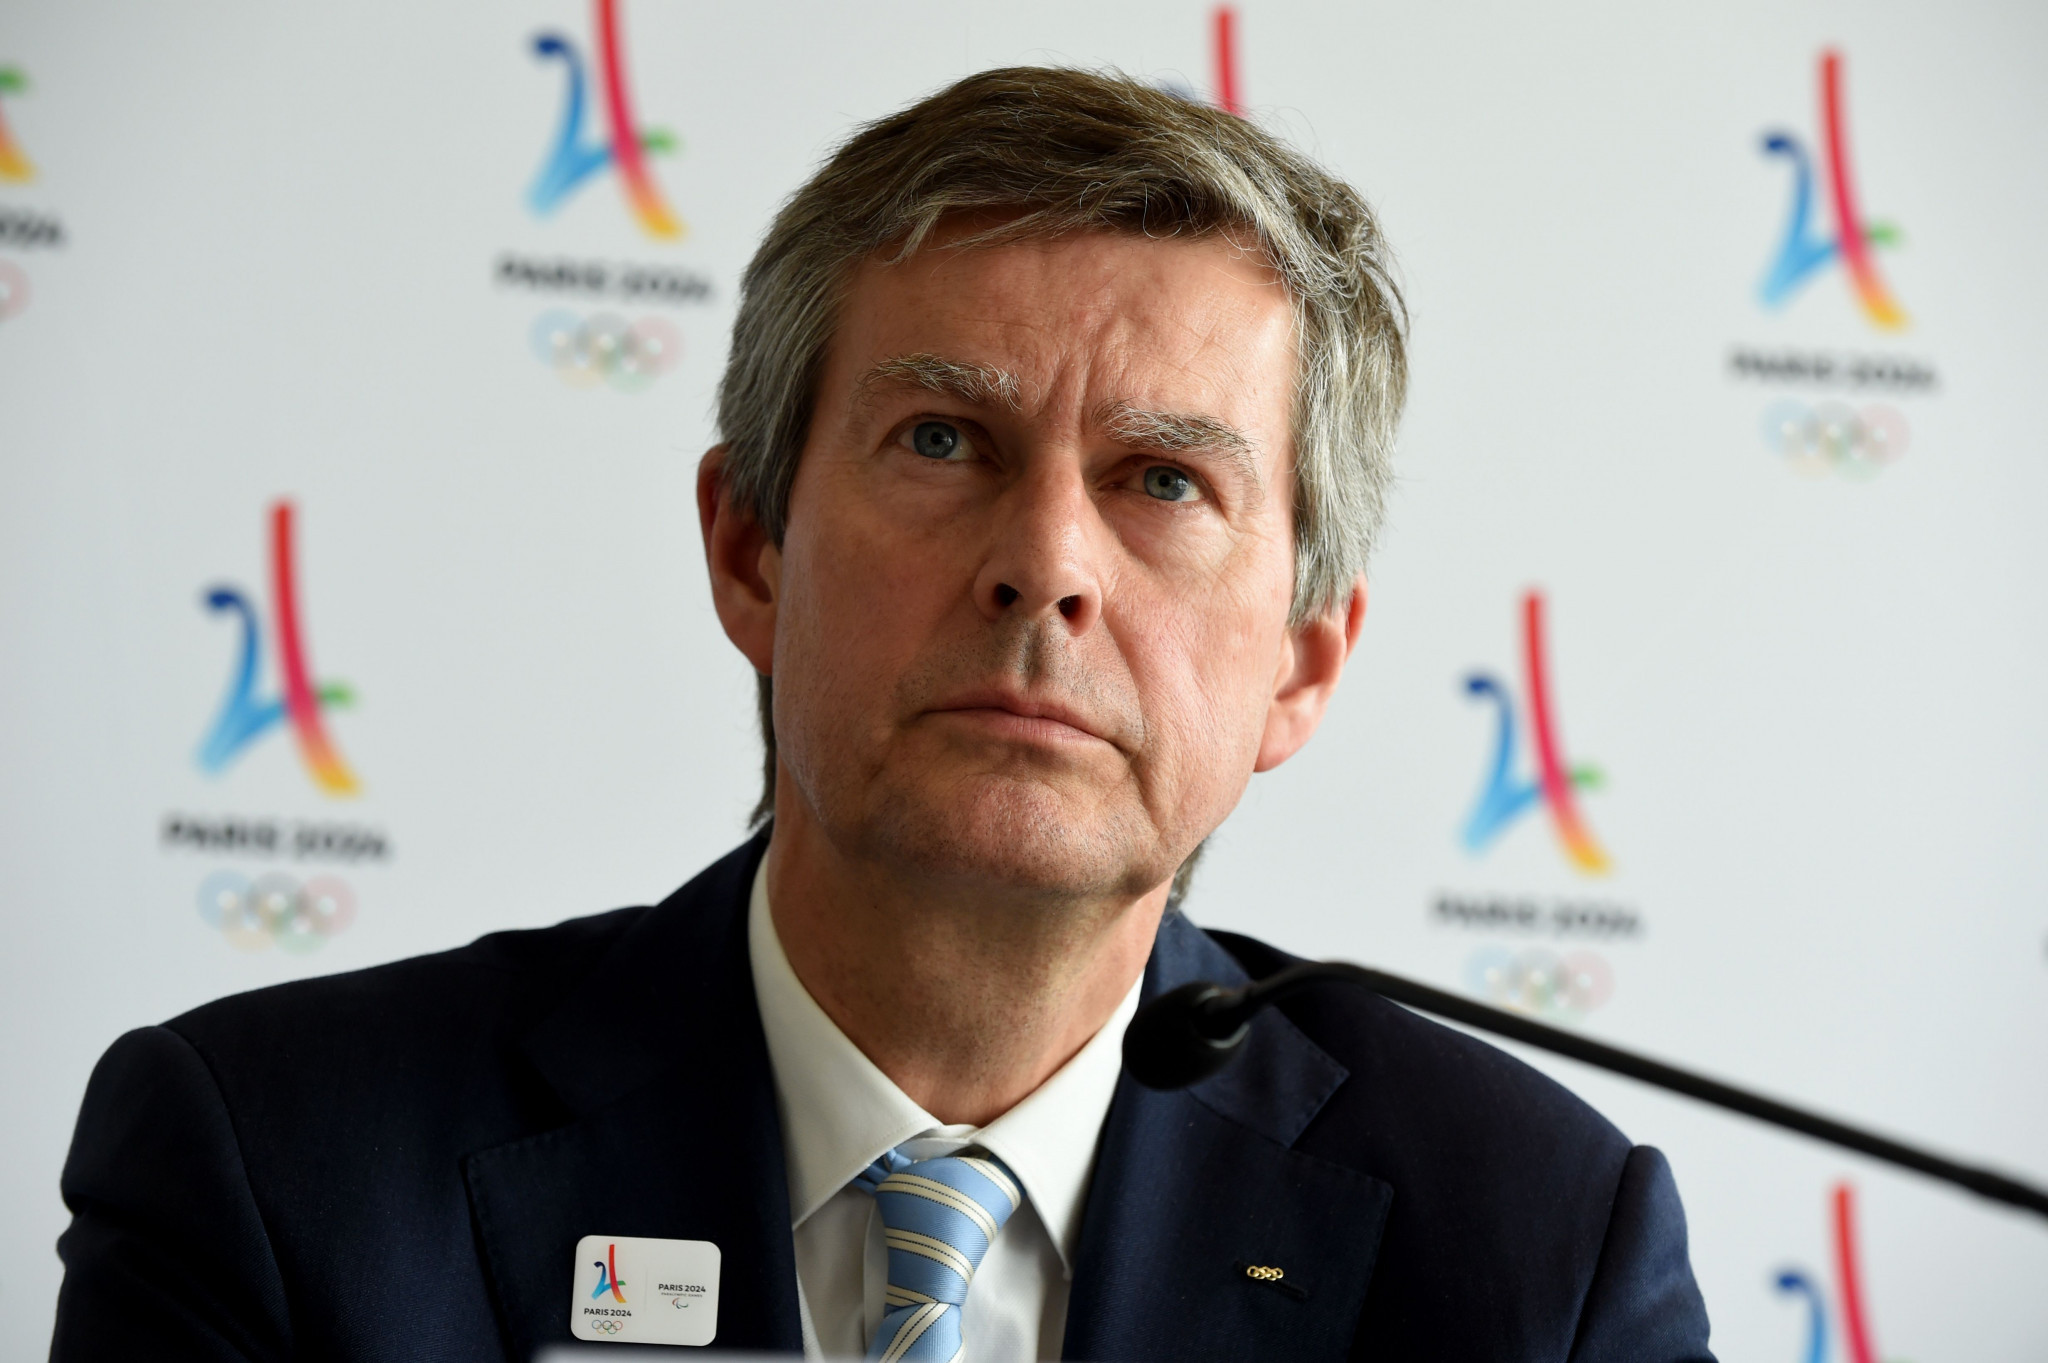 Paris 2024 IOC Coordination Commission Chair Pierre-Olivier Beckers-Vieujant has stressed the importance of the group's visit to Marseille ©Getty Images